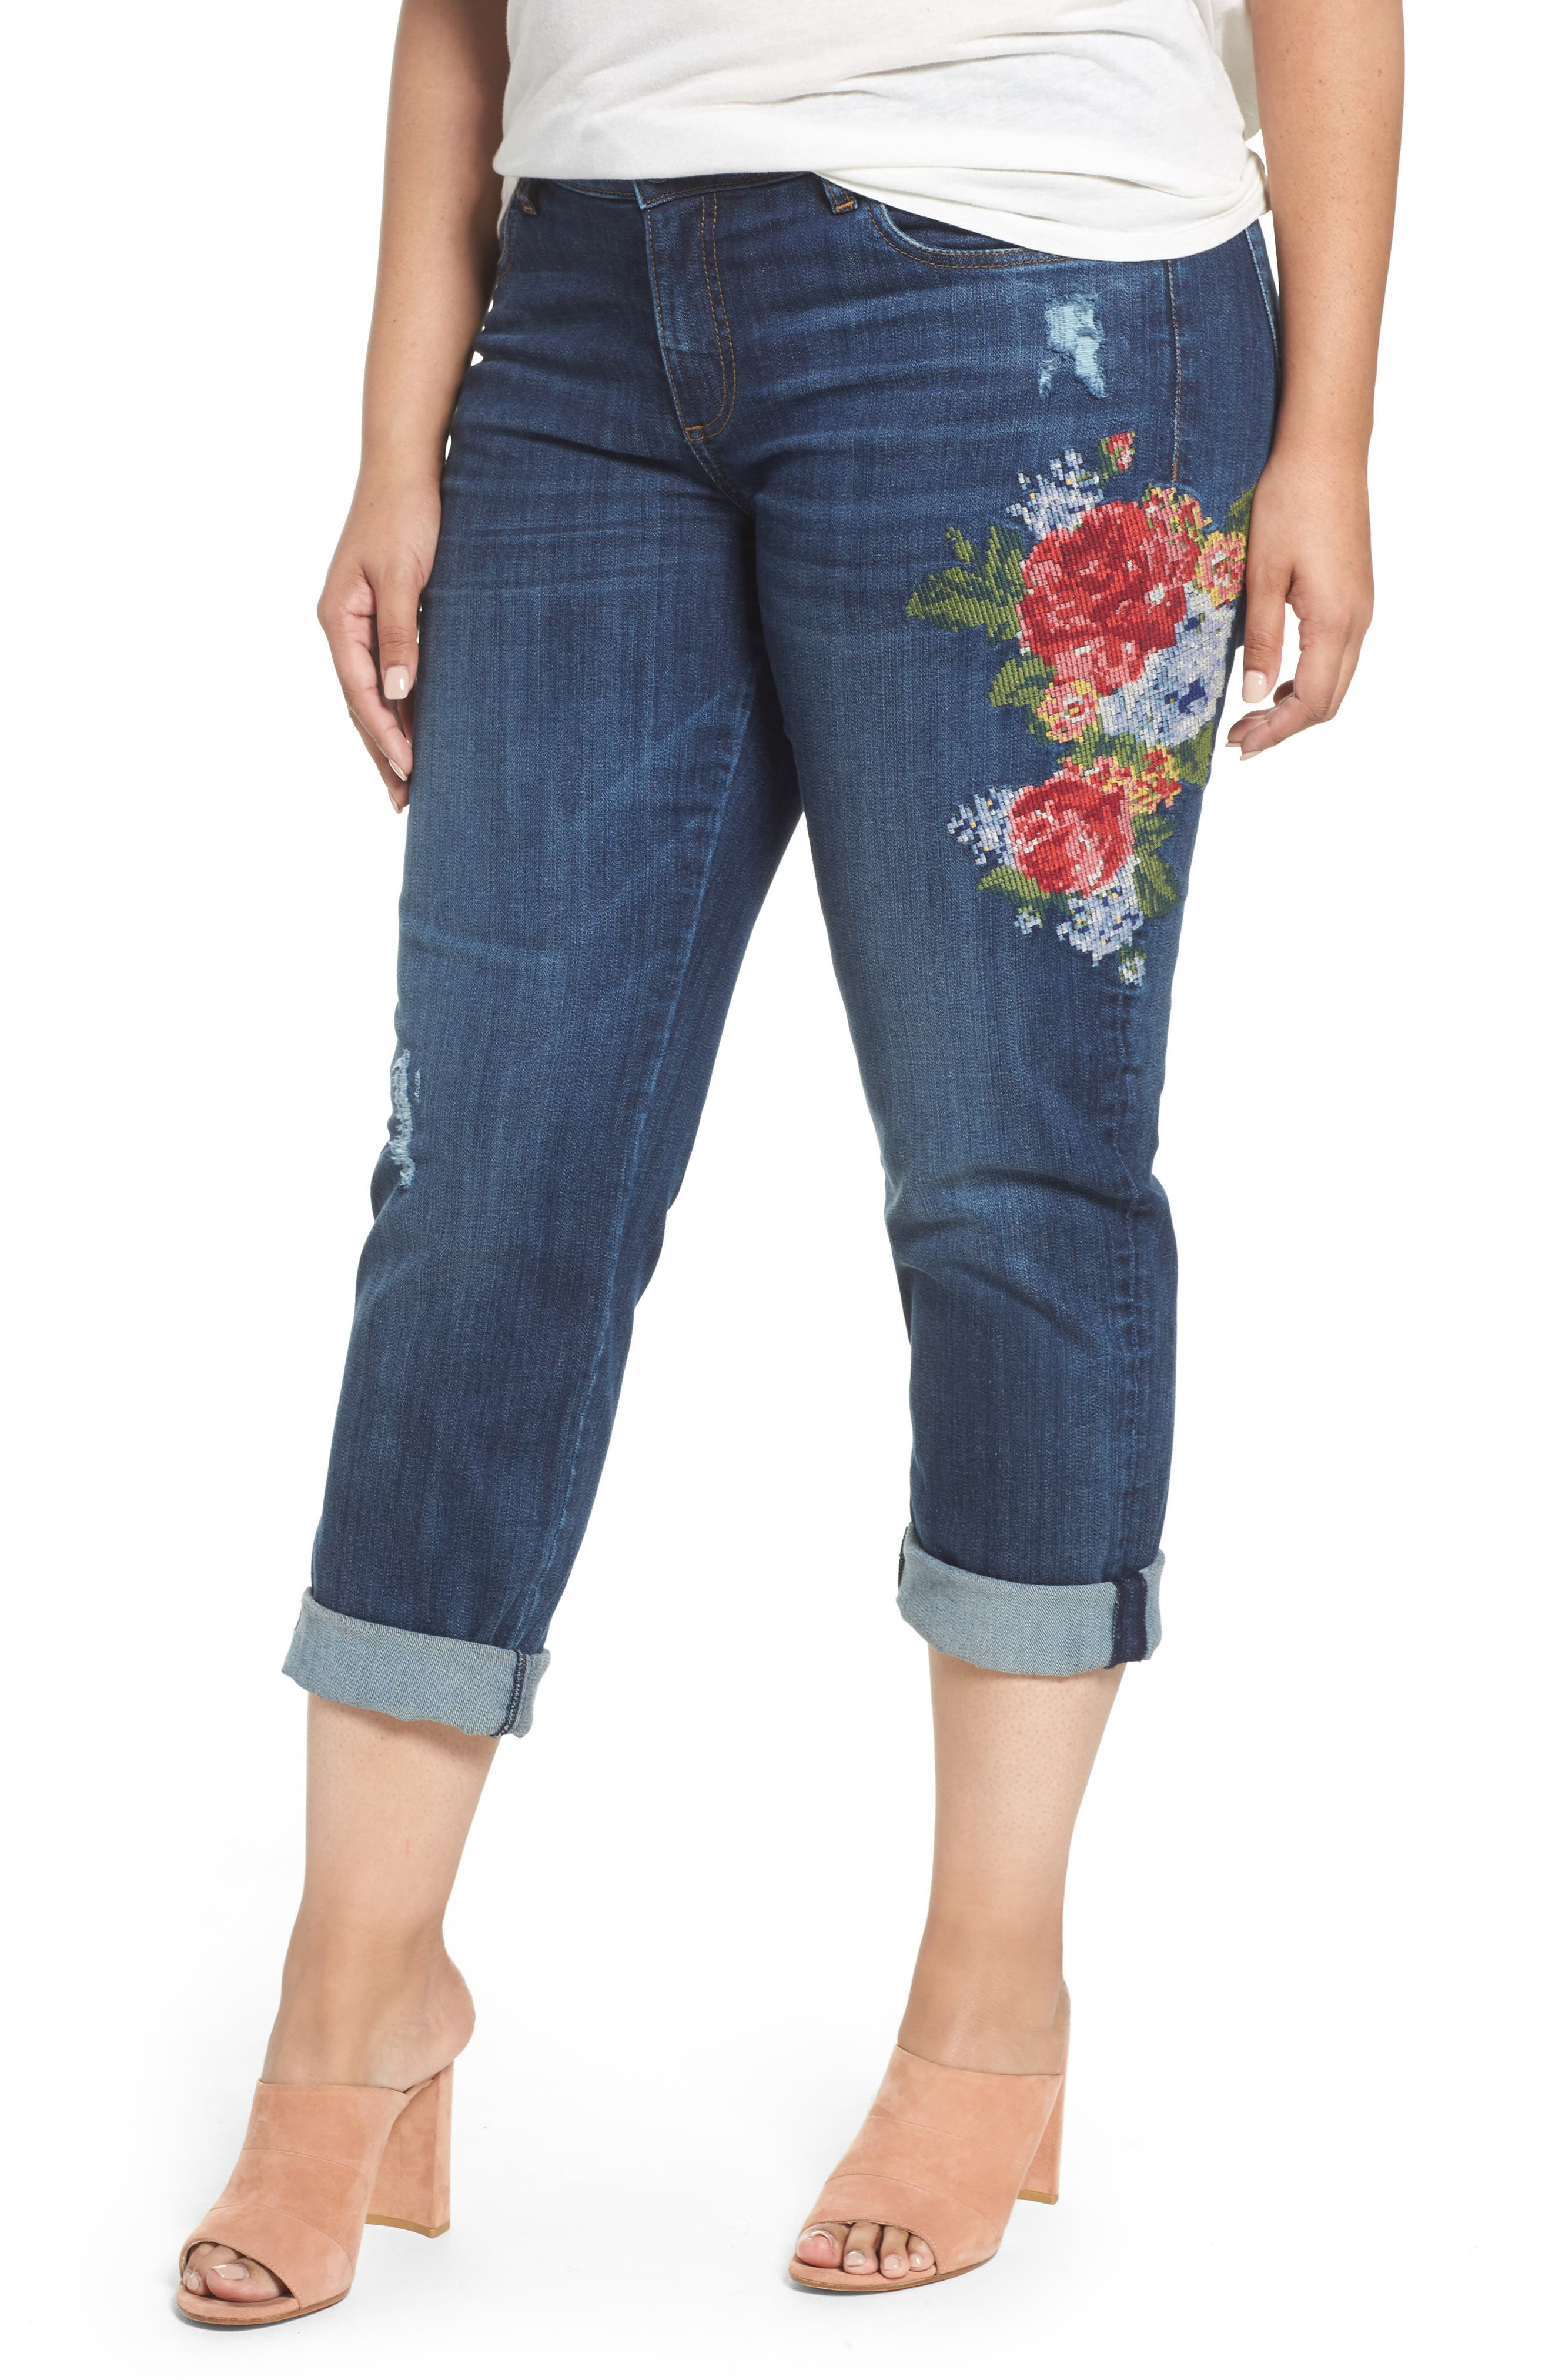 Main Image - KUT from the Kloth Catherine Embroidered Boyfriend Jeans (Premier Dark) (Plus Size)